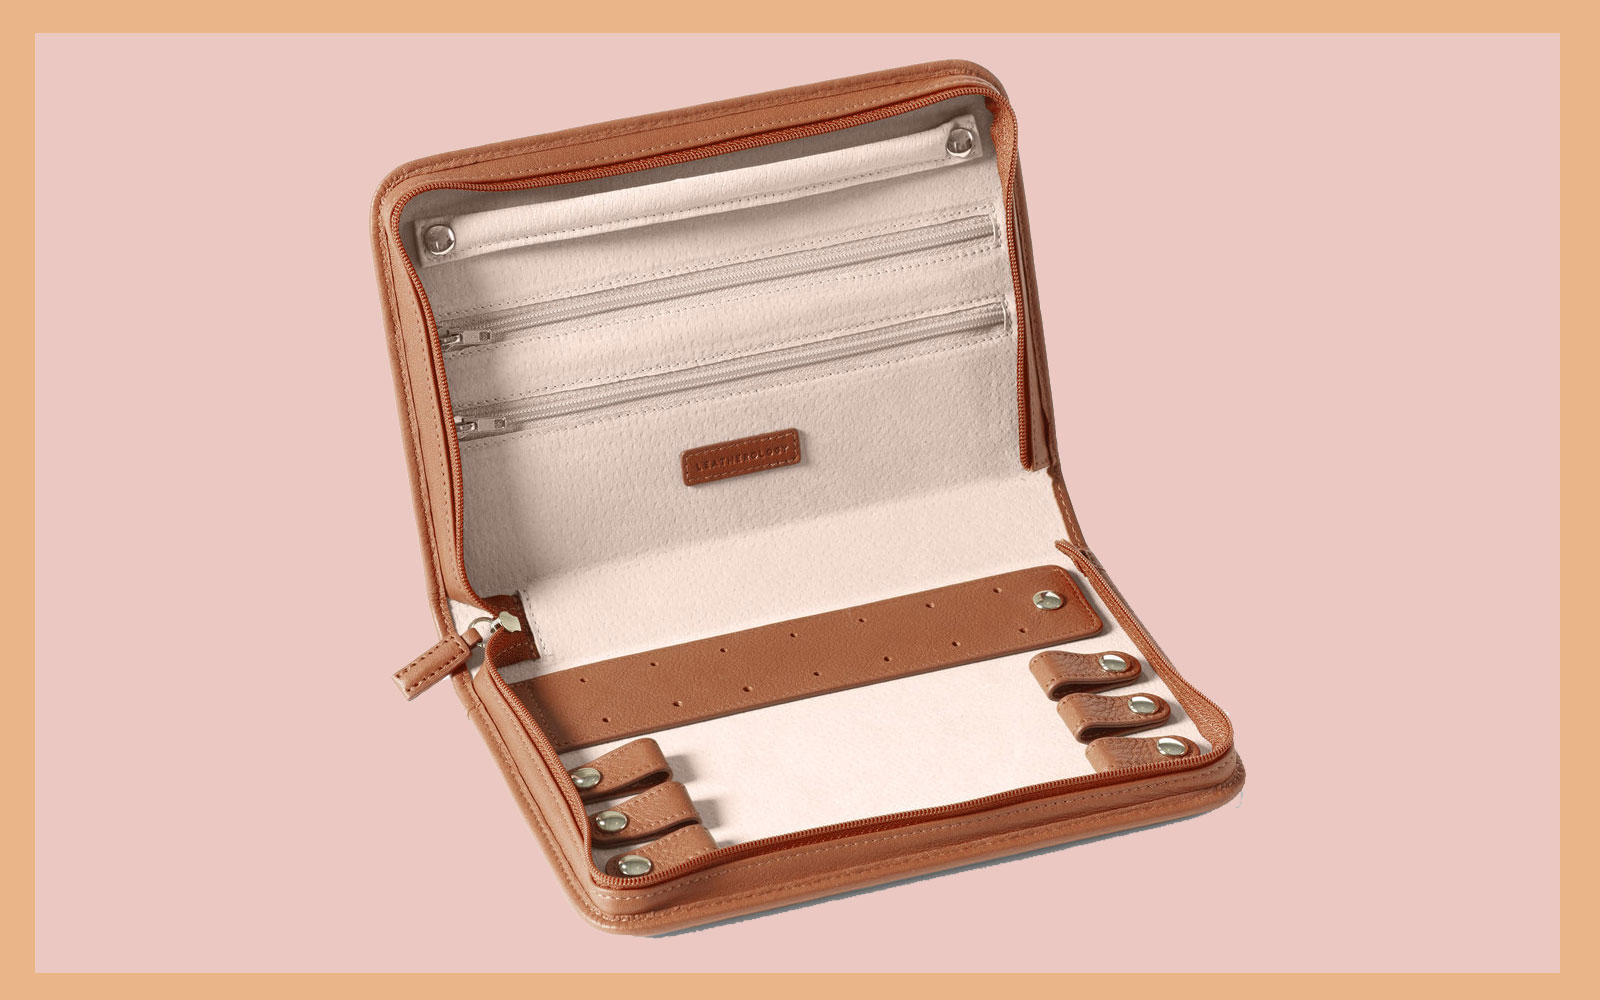 Brown/Tan Leather Jewelry Travel Case Interior